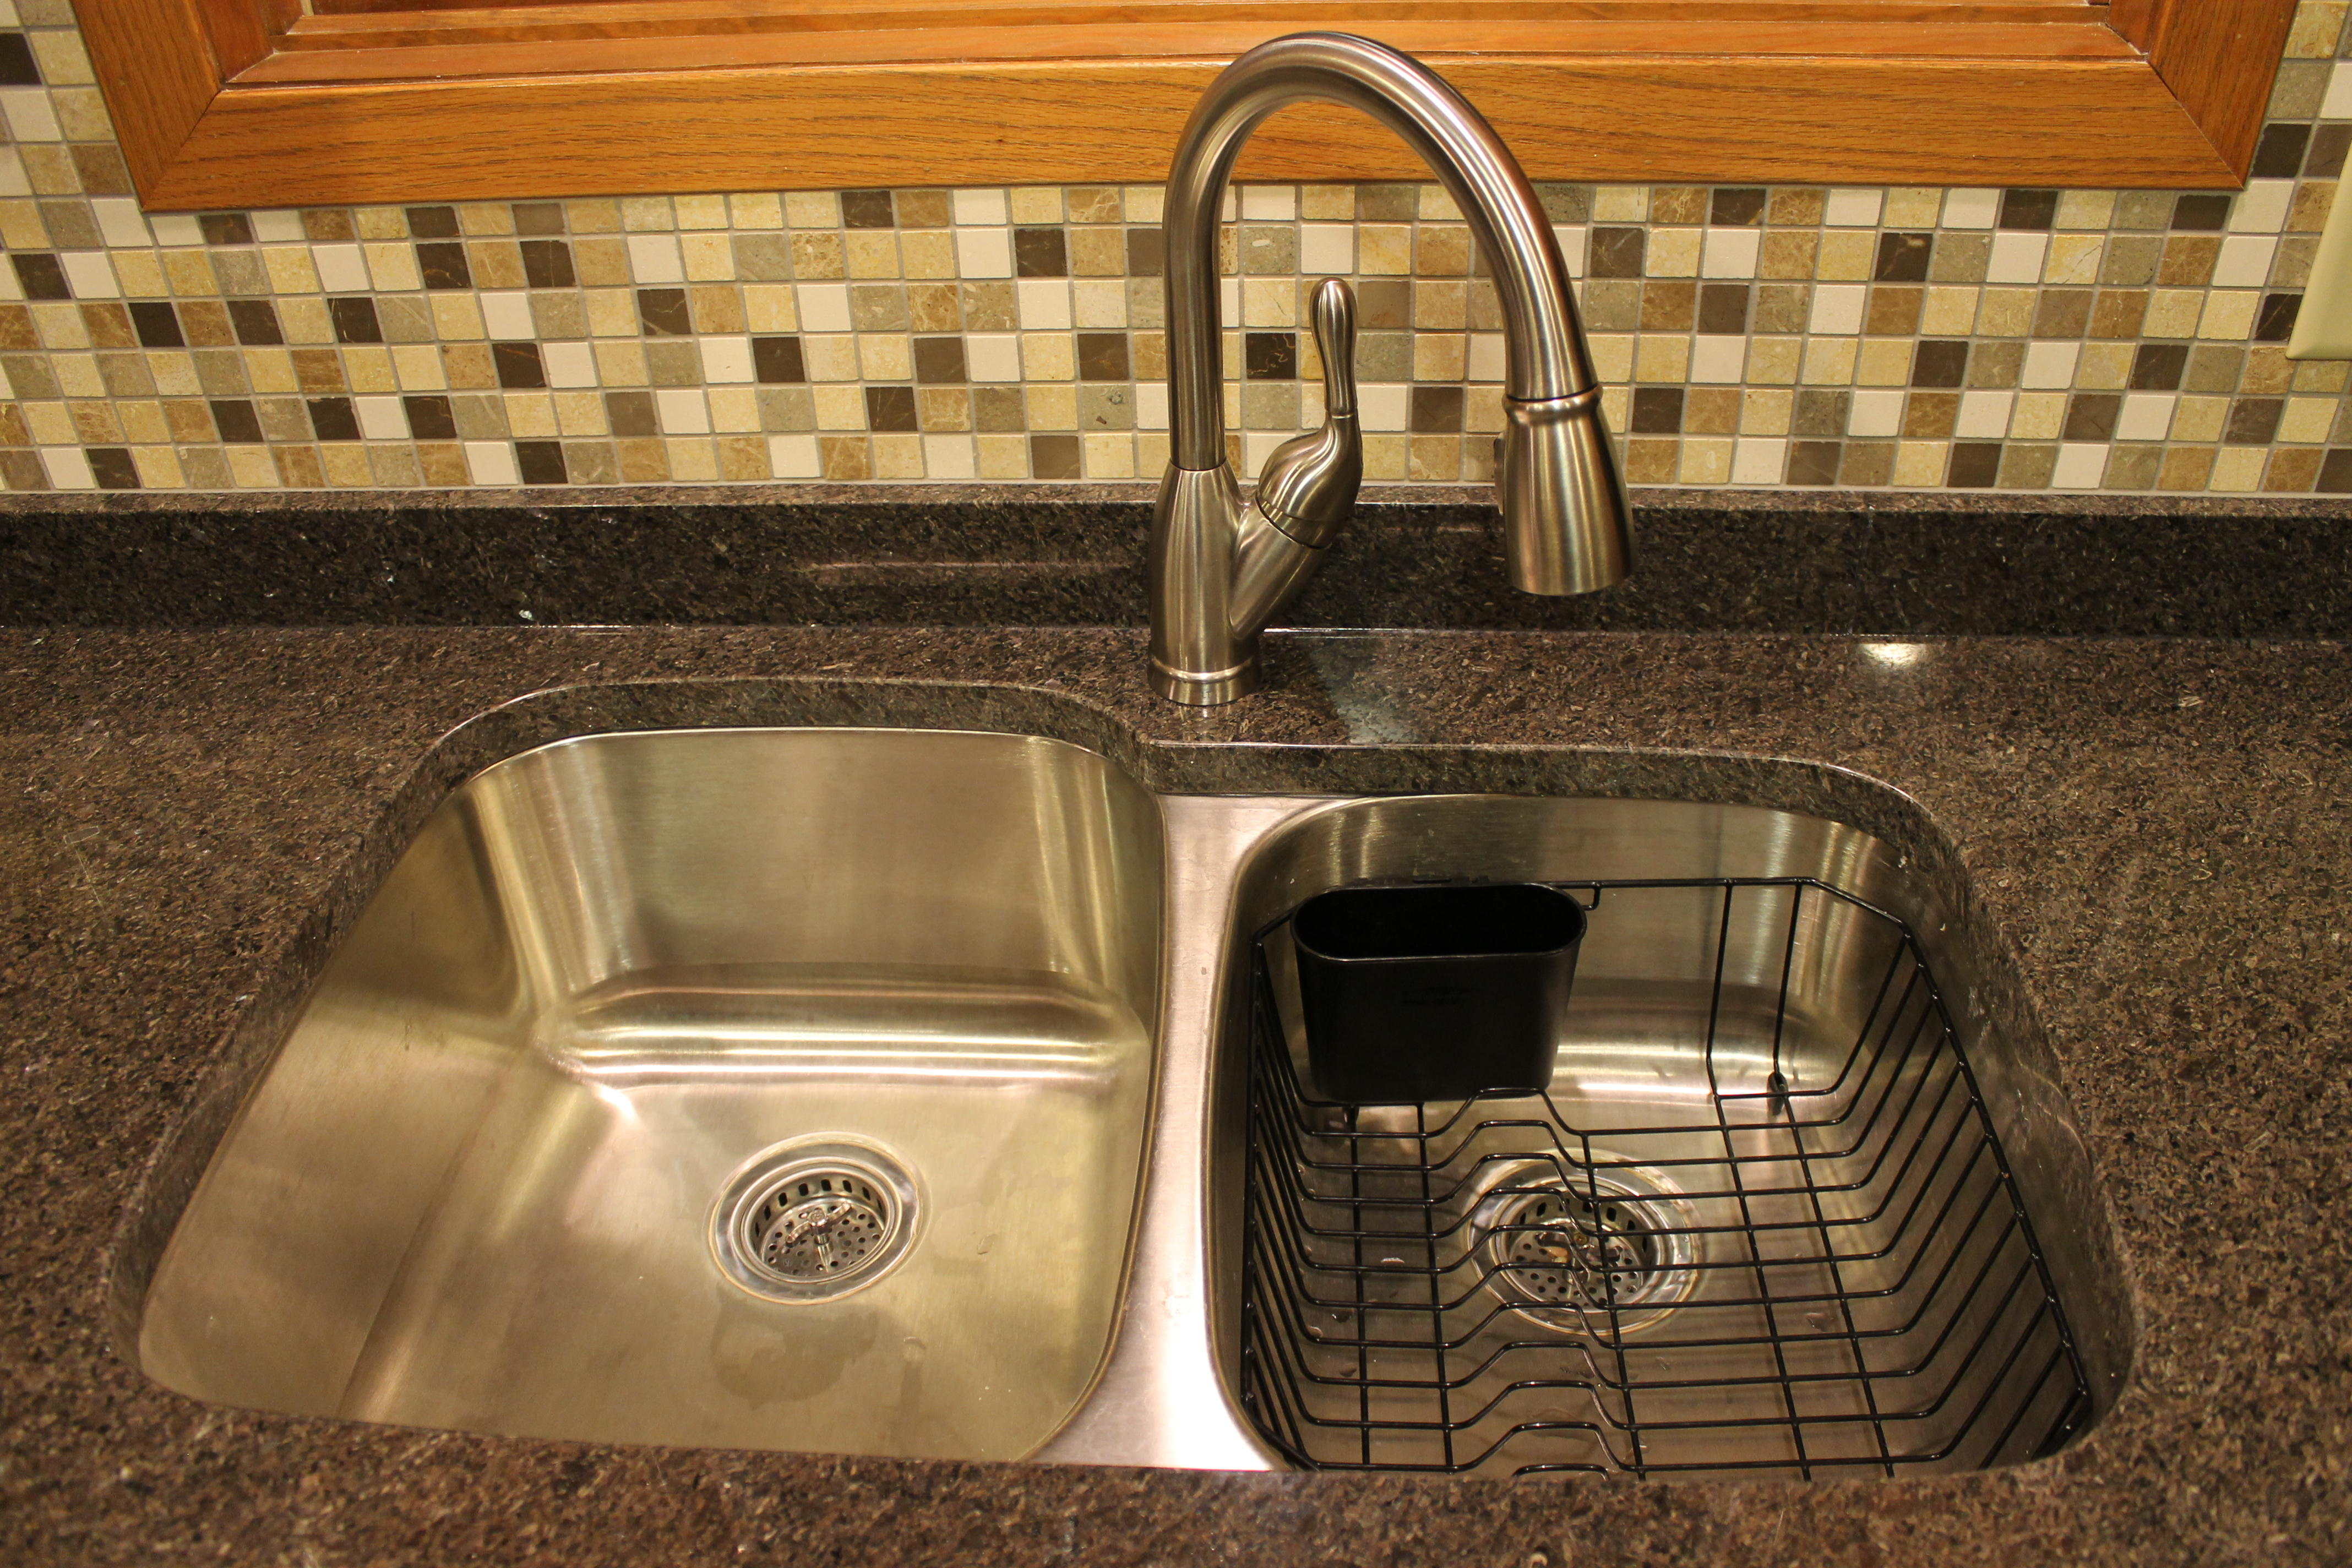 The whole kitchen sink interesting single bowl traditional kitchen best share this with the whole kitchen sink workwithnaturefo